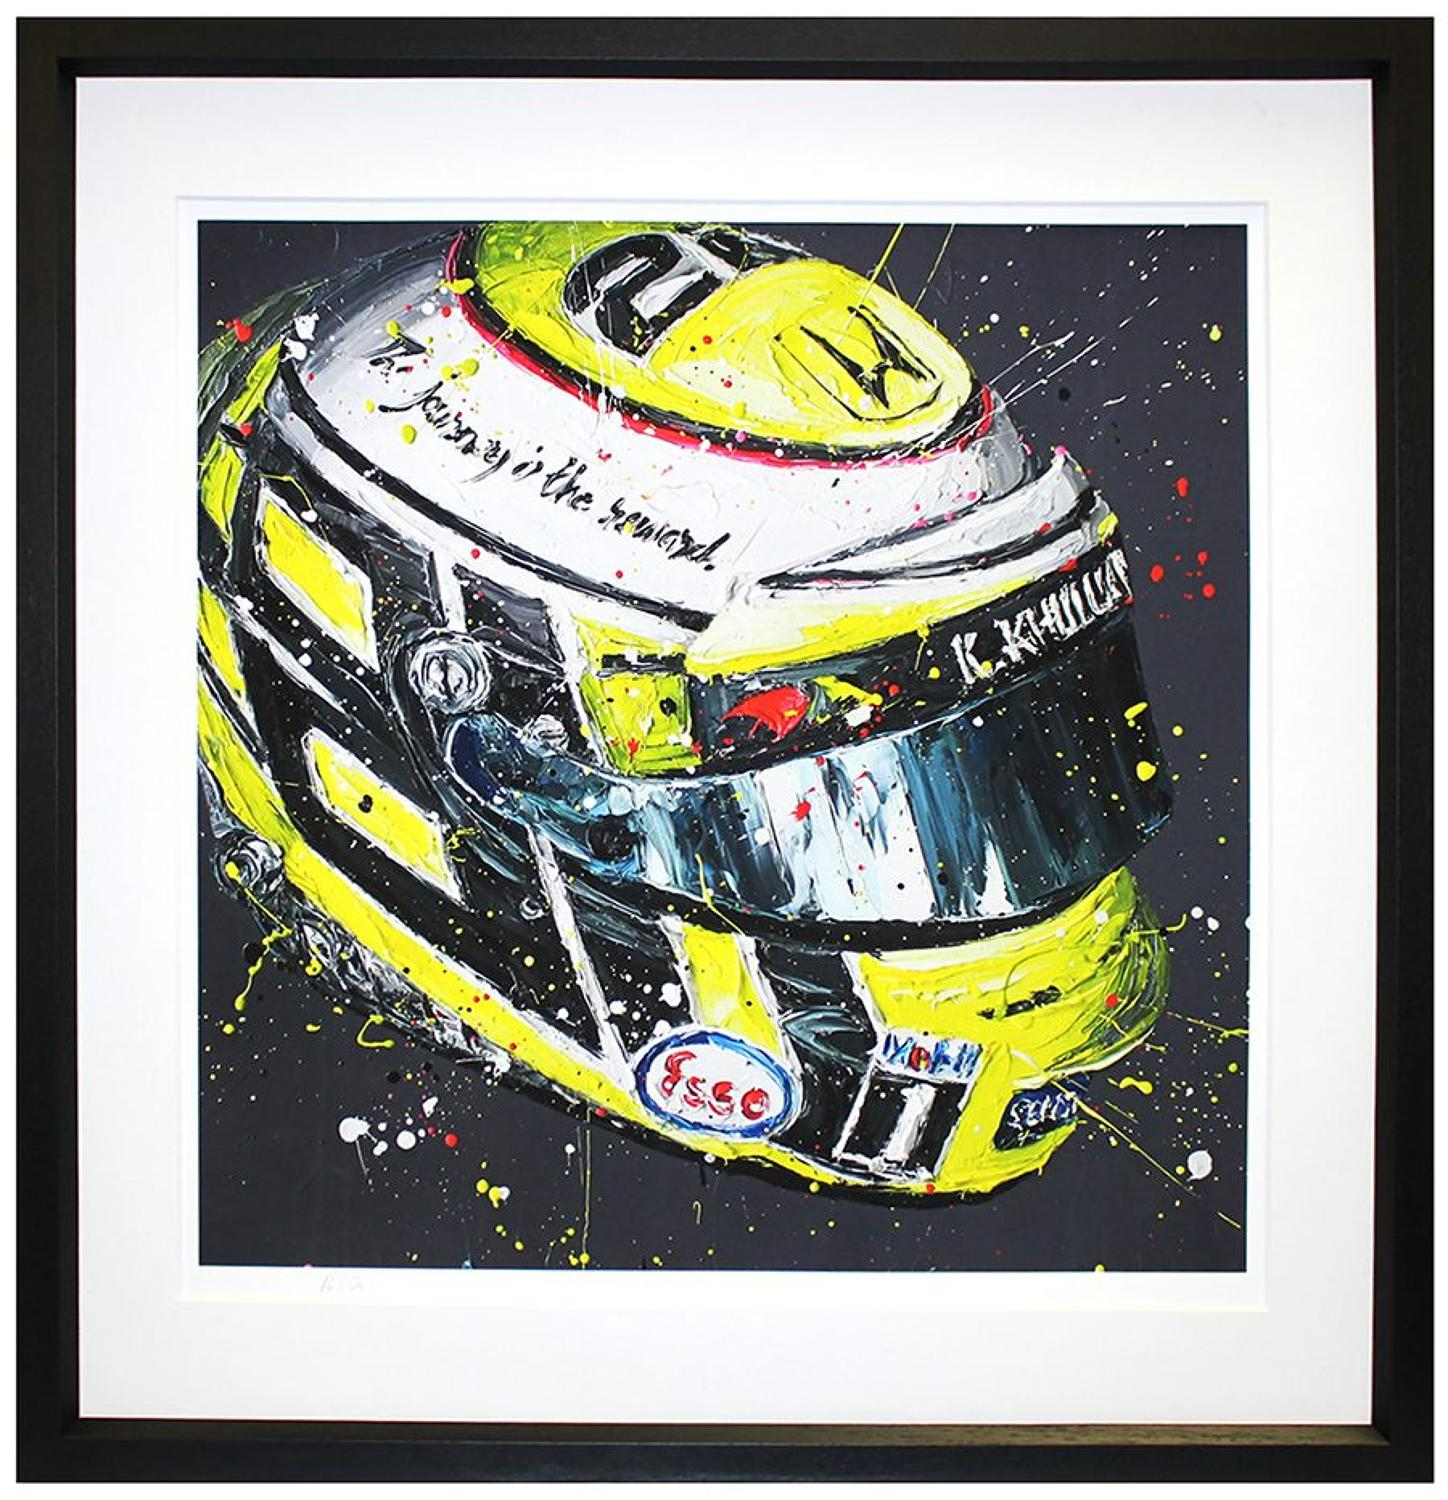 Jenson Button Last Lid Framed Art Print by Paul Oz